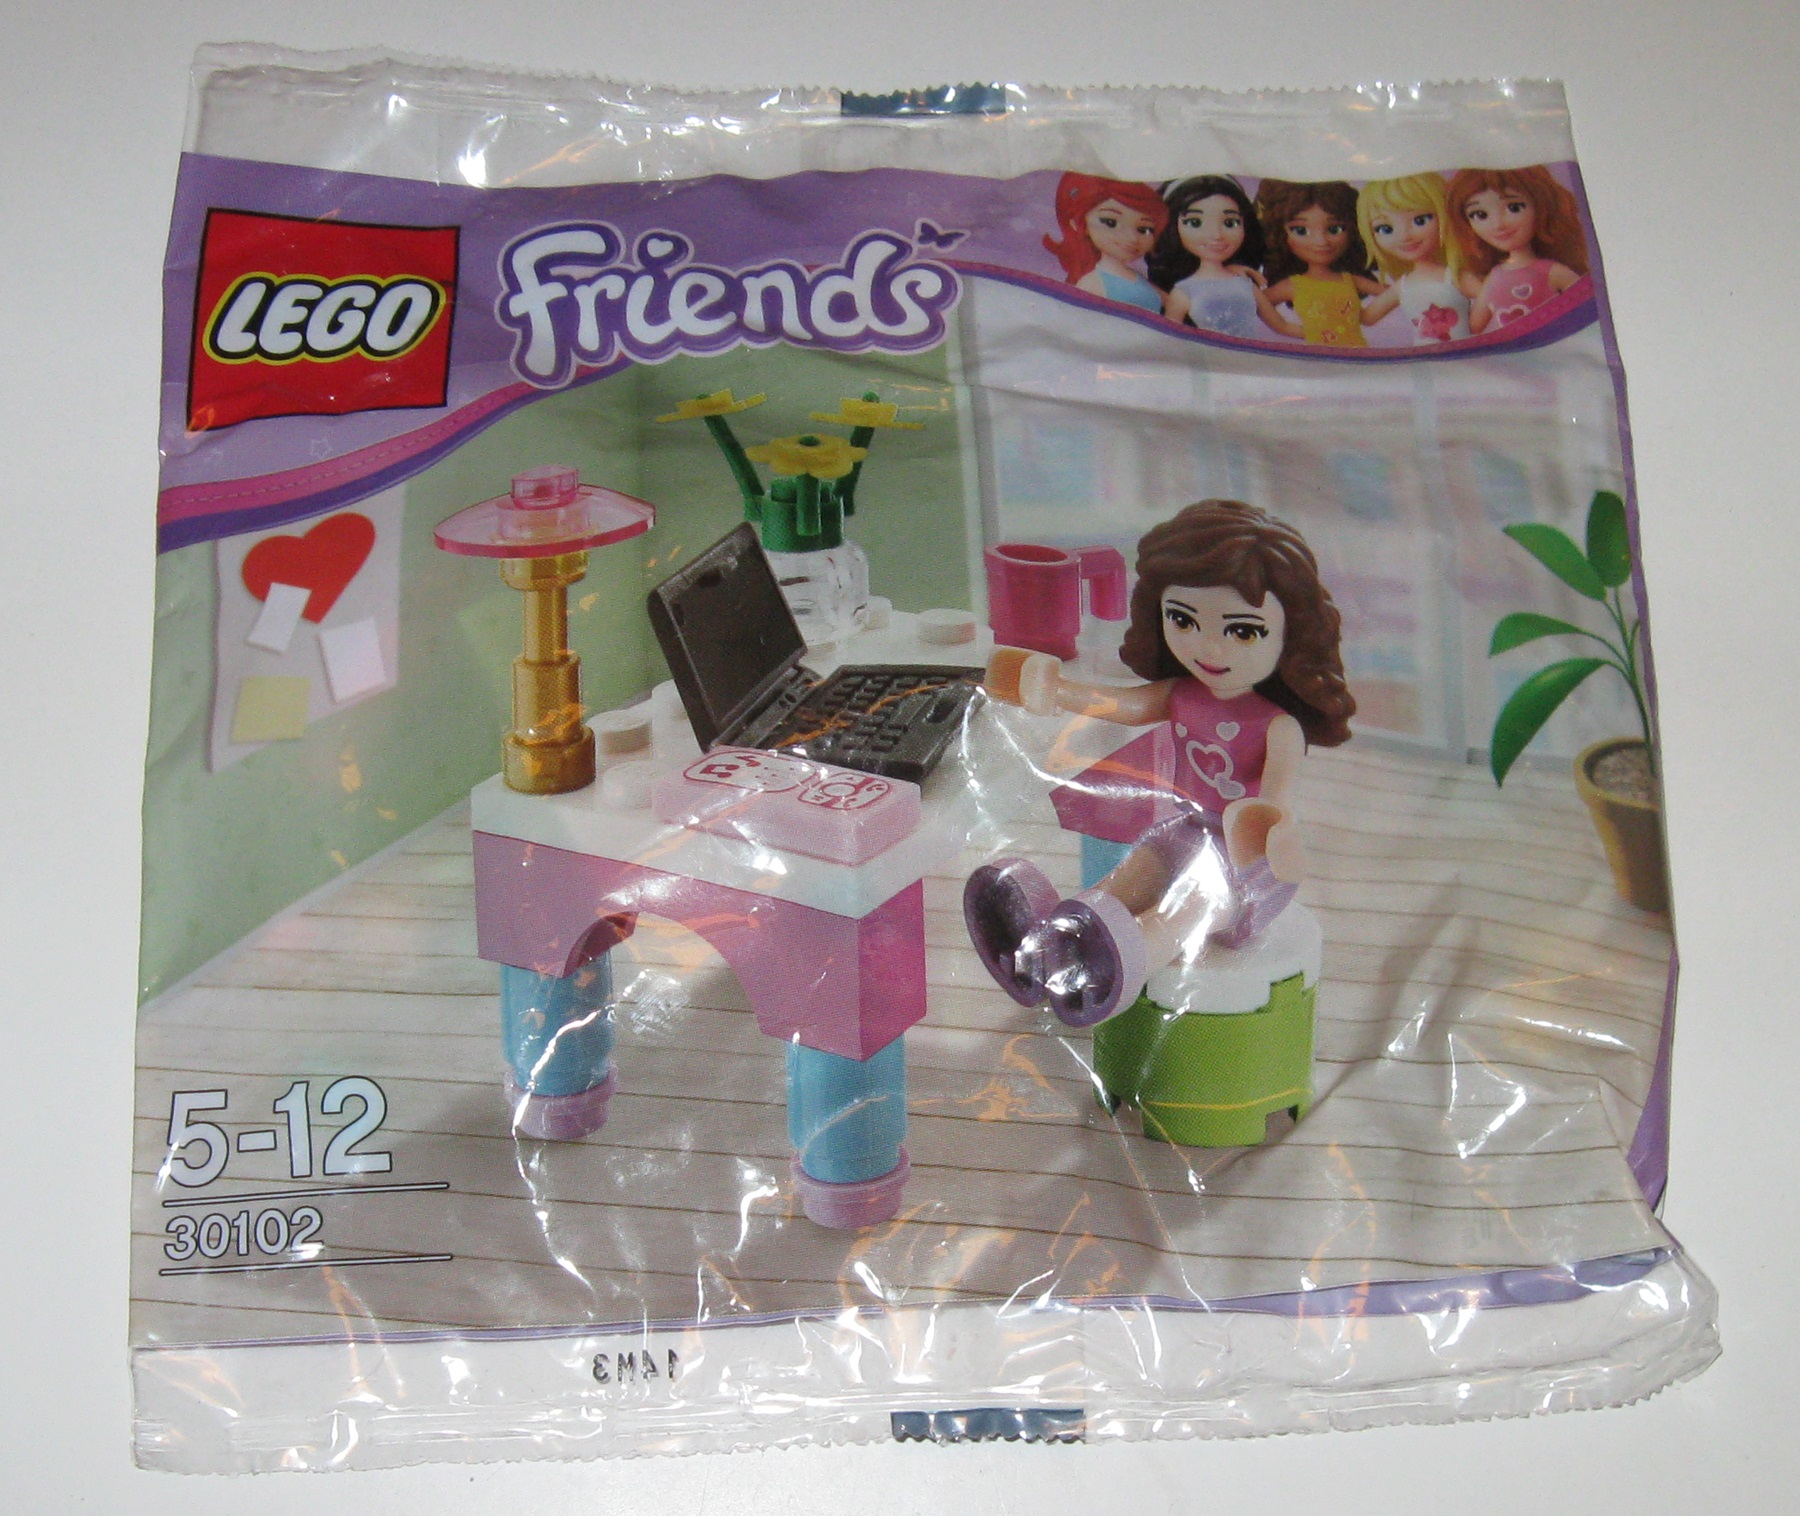 0020 Lego Friends 30102